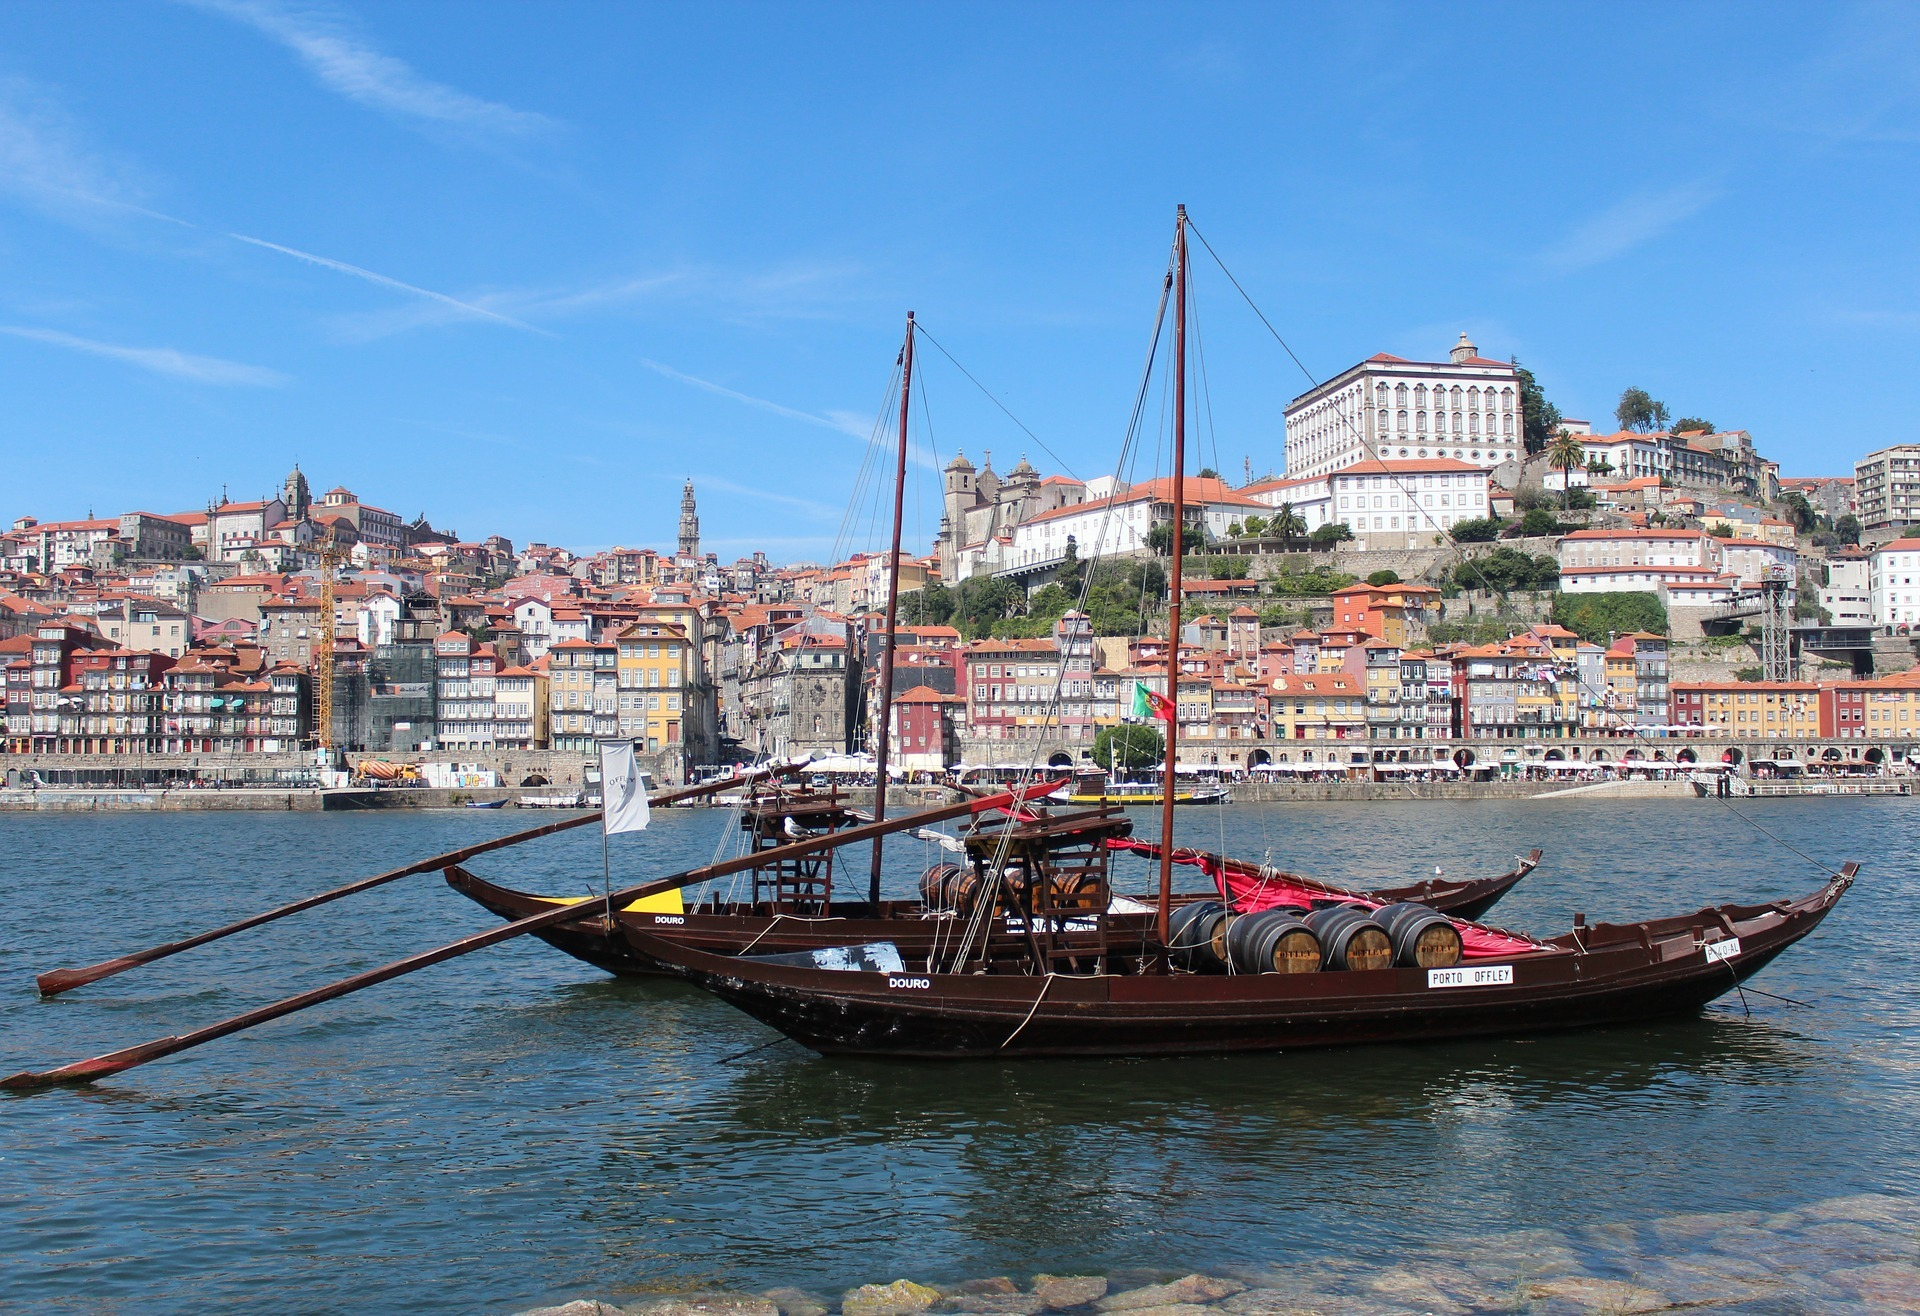 Grande Hotel do Porto - 10 reasons to visit Porto